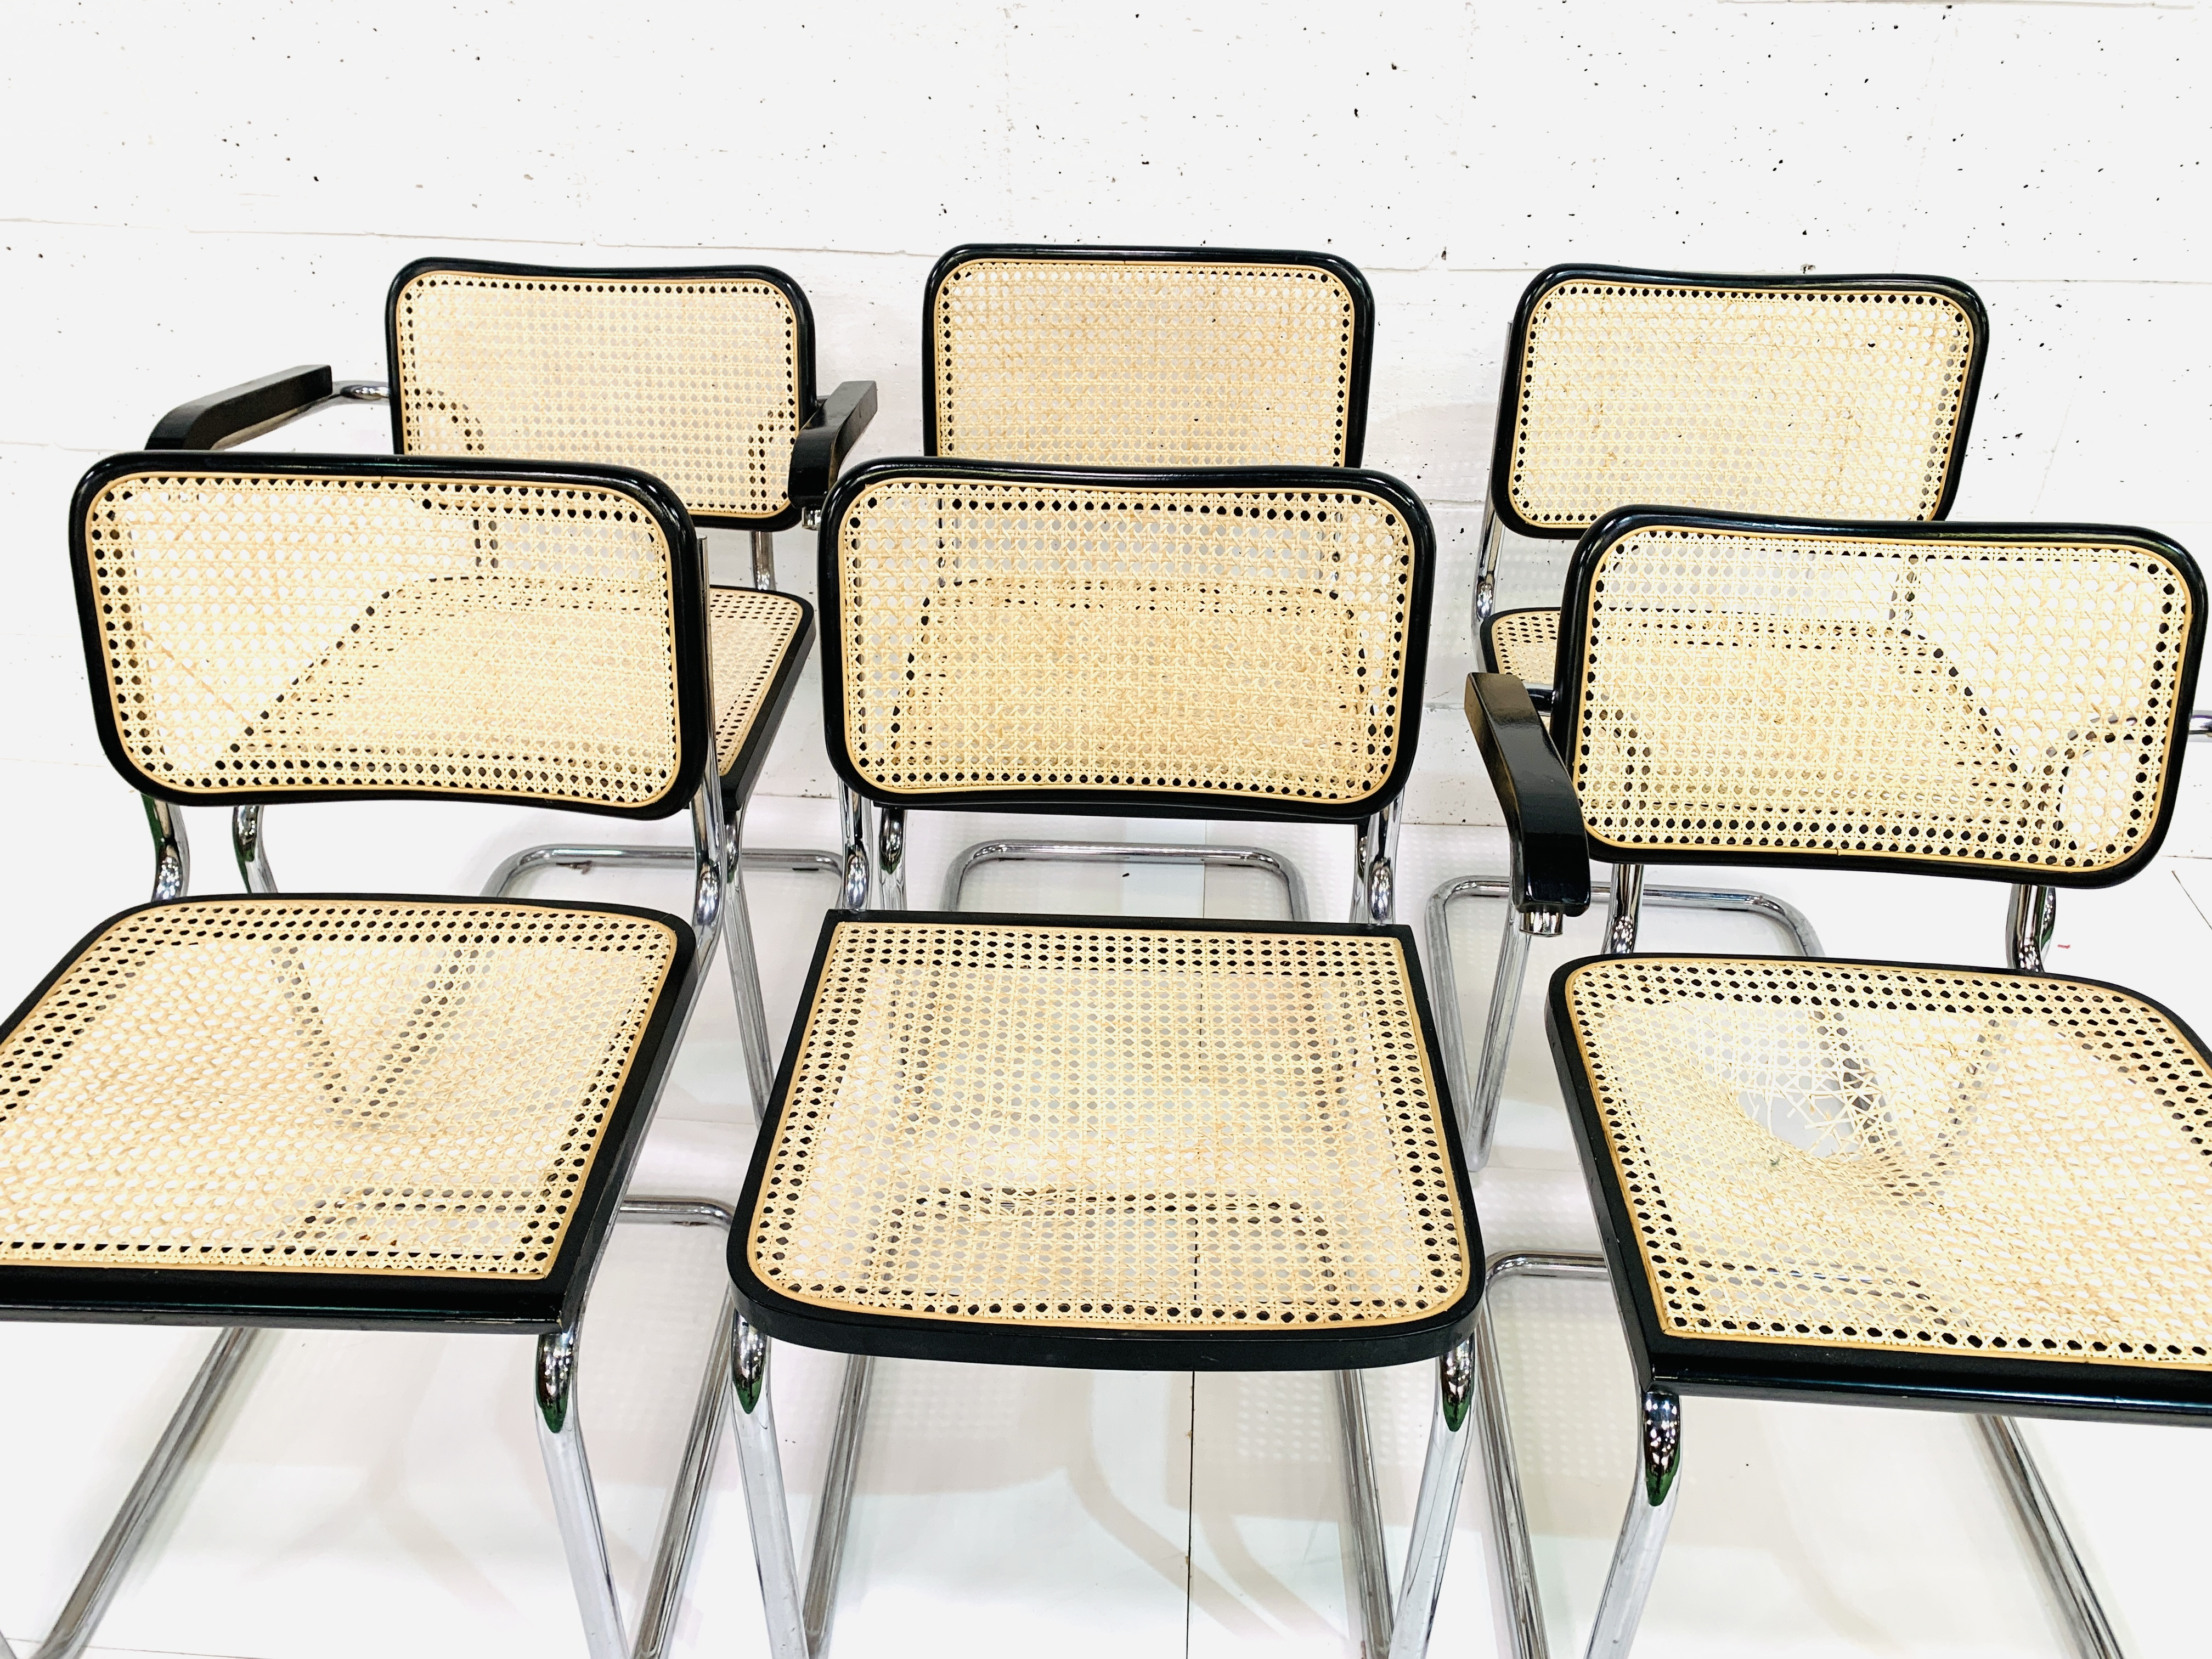 Group of six Italian chrome framed chairs - Image 2 of 6